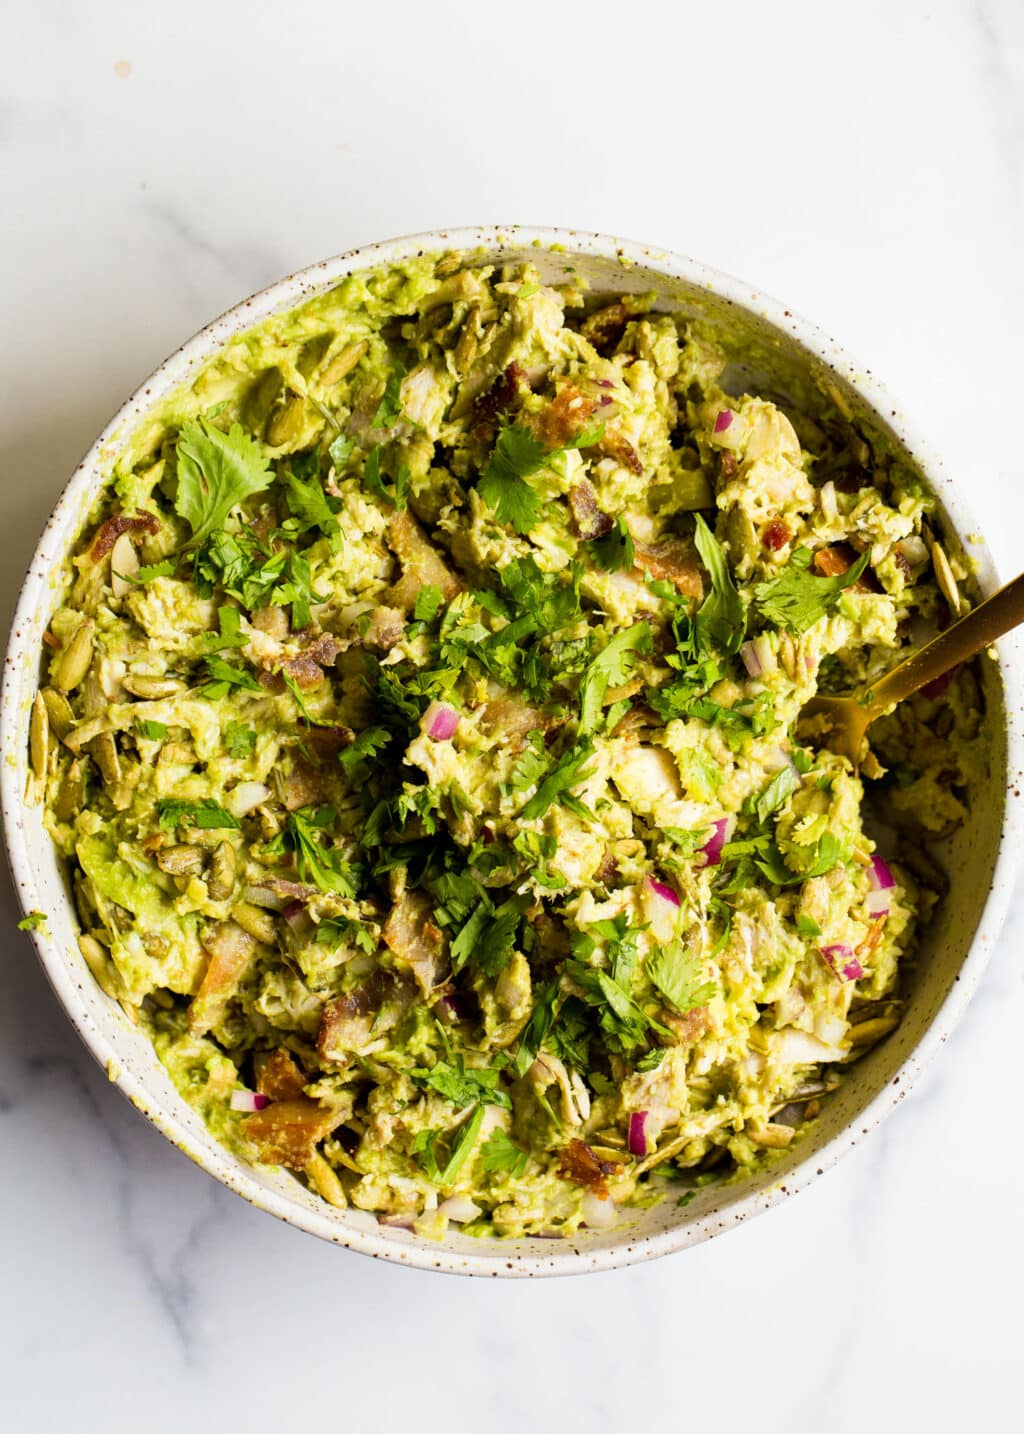 Avocado chicken salad in a white bowl on a white background